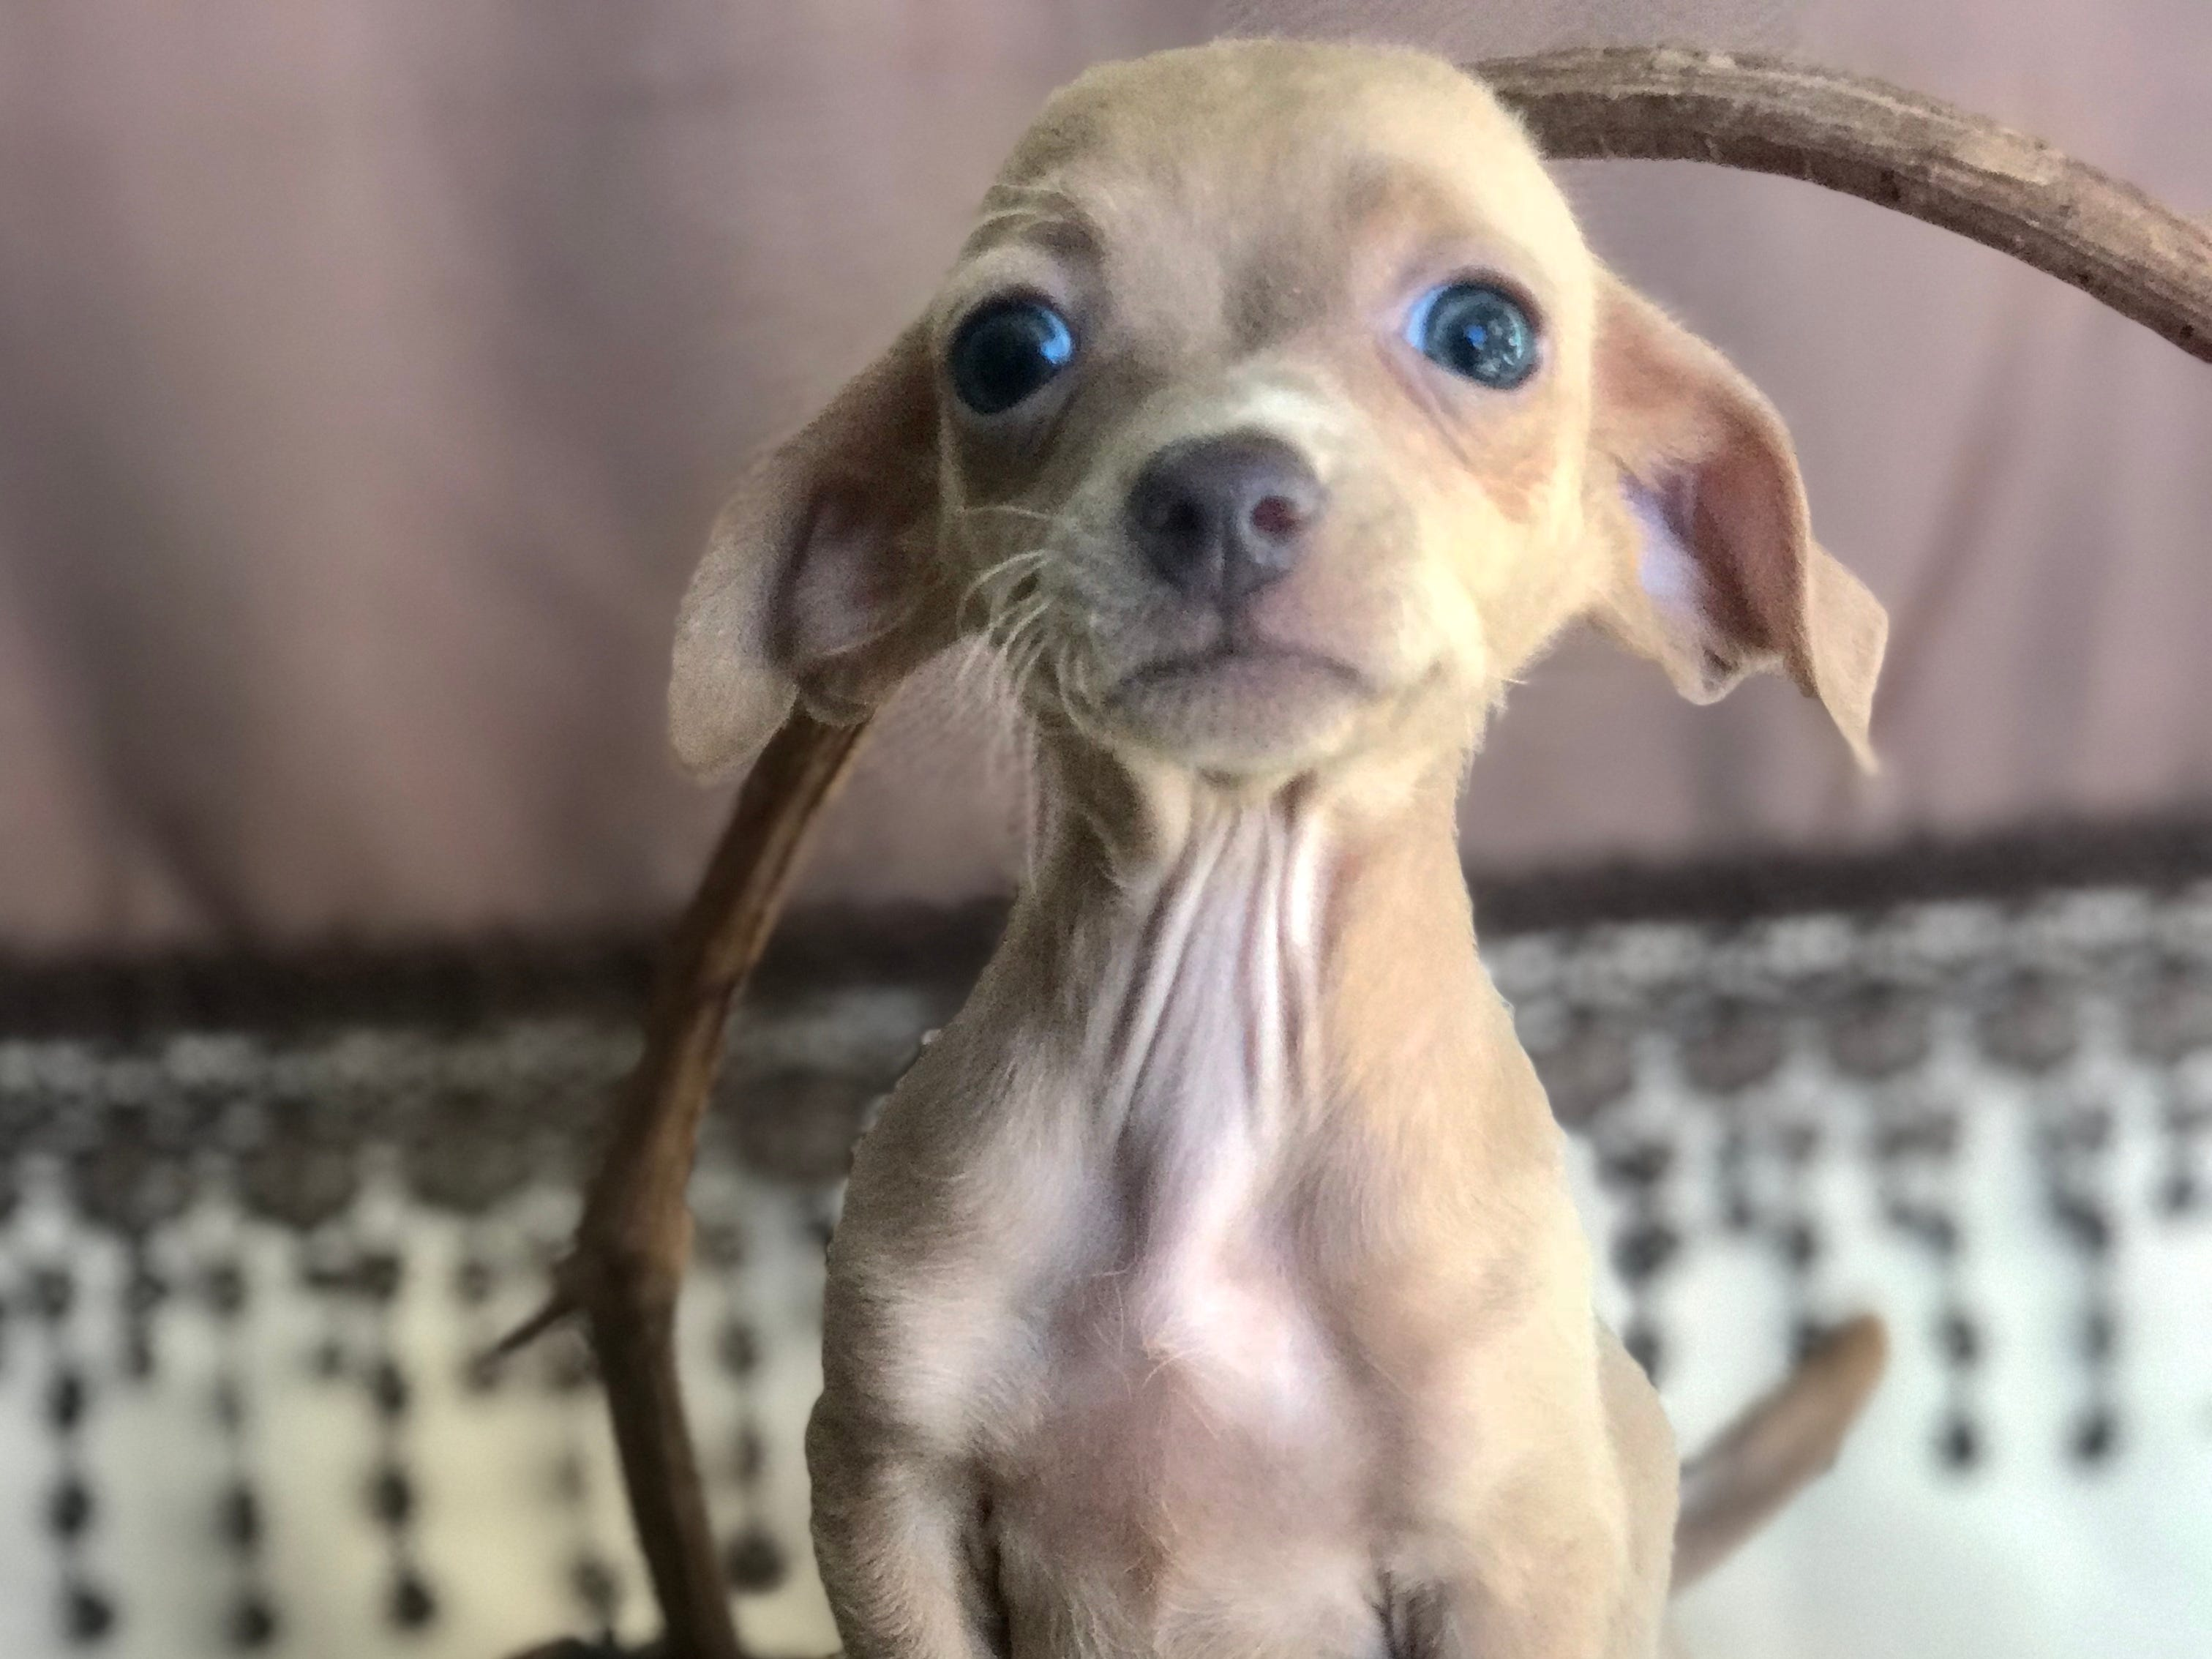 Astoria is a petite, 3-month-old female Chihuahua-dachshund mix who does well with other dogs and is learning about cats. She'd best in a family with children ages 11 and older because of her small size.  Visit Tails of Rescue Adoption Center, 981 Lake Blvd., Redding. Call 448-7444. Go to http://tailsofrescue.org.